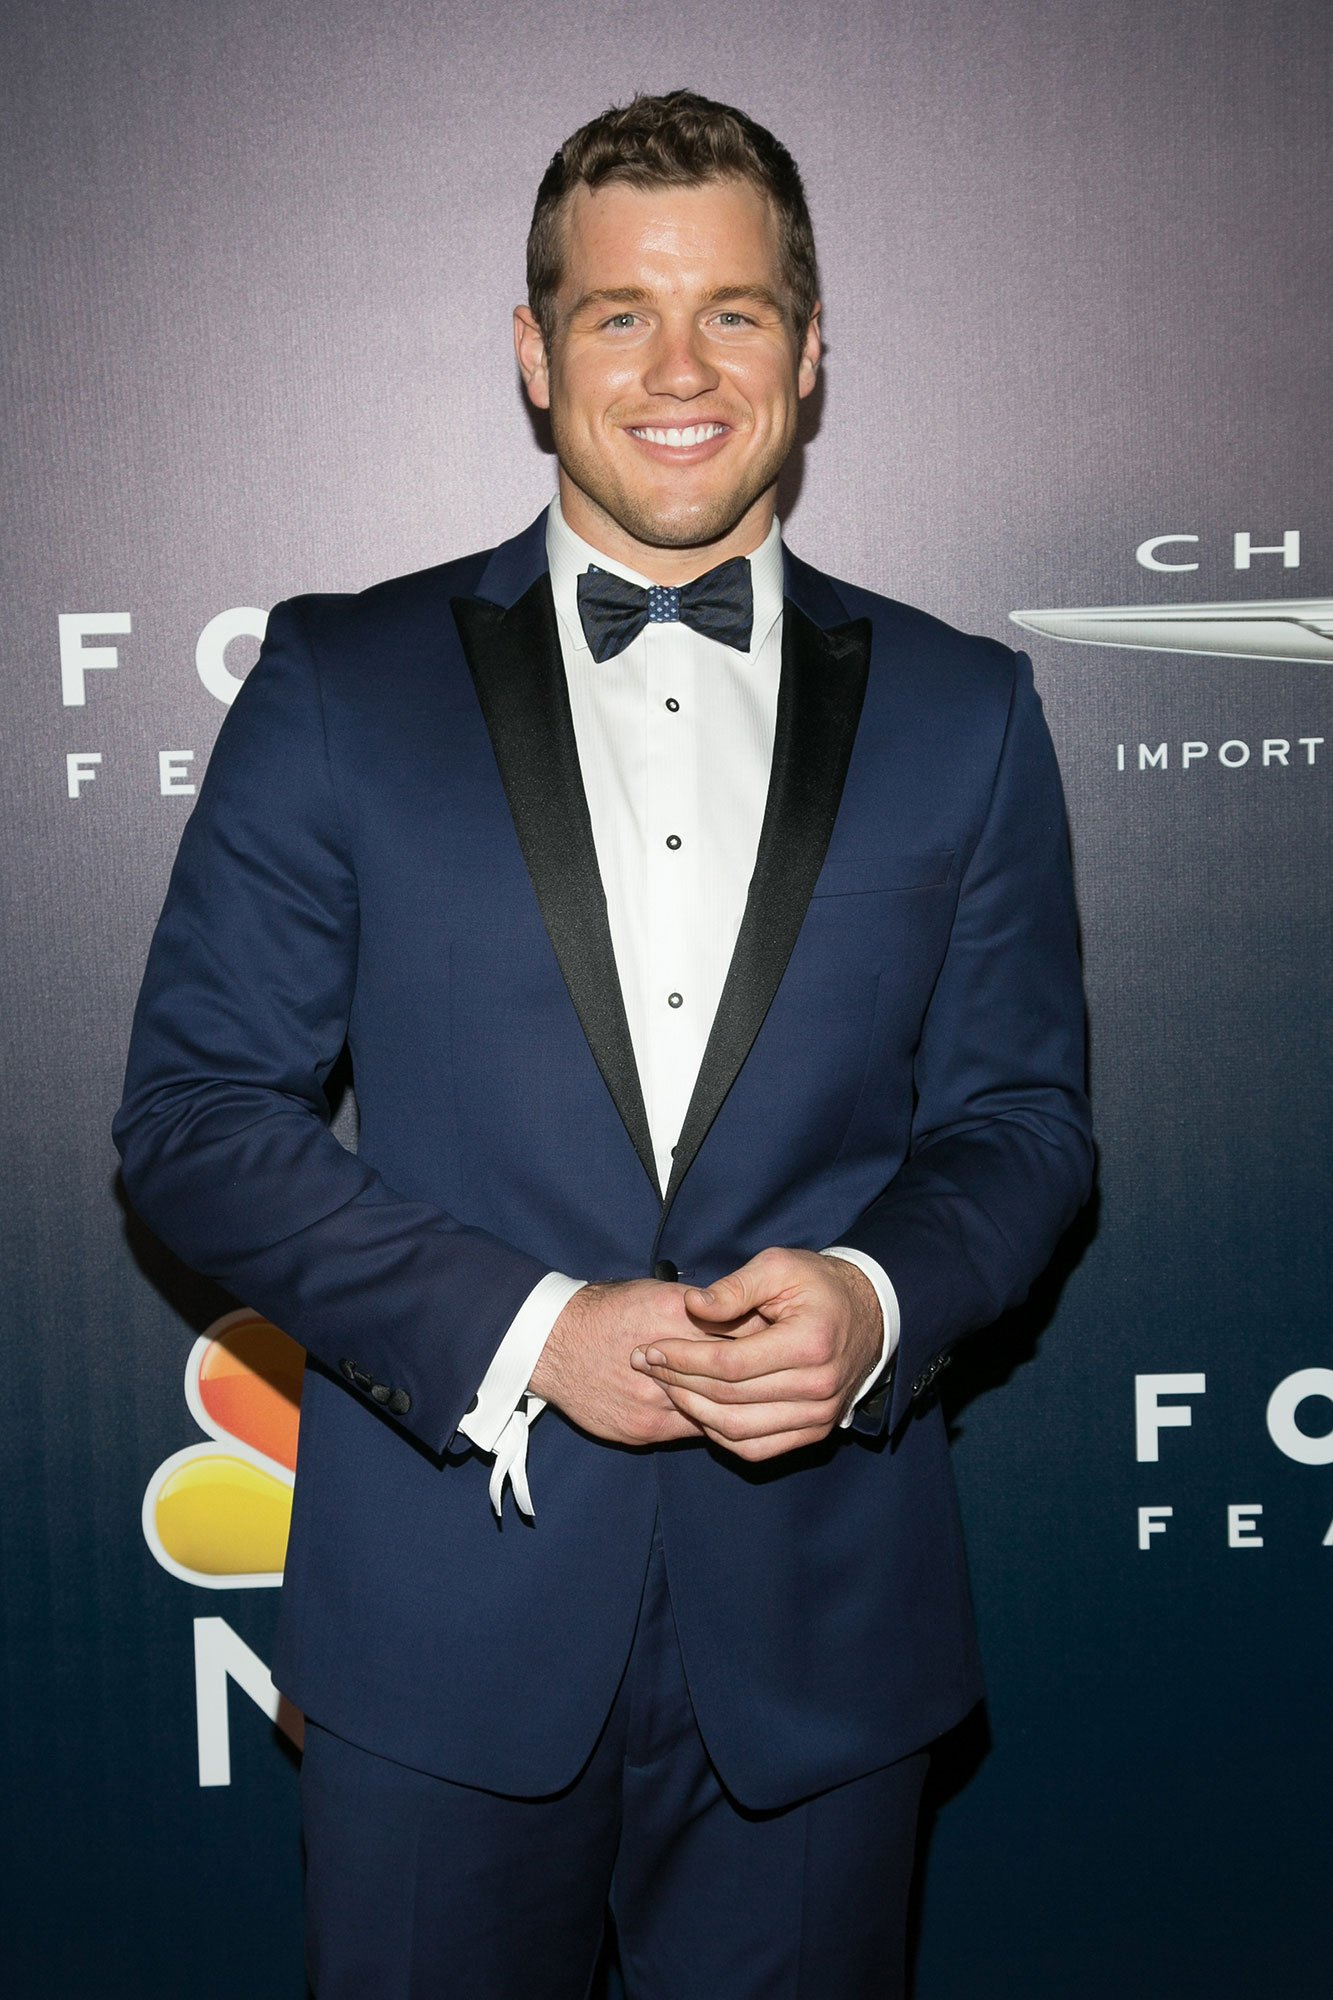 Twitter Has Mixed Reactions to Colton Underwood'sBachelorCasting